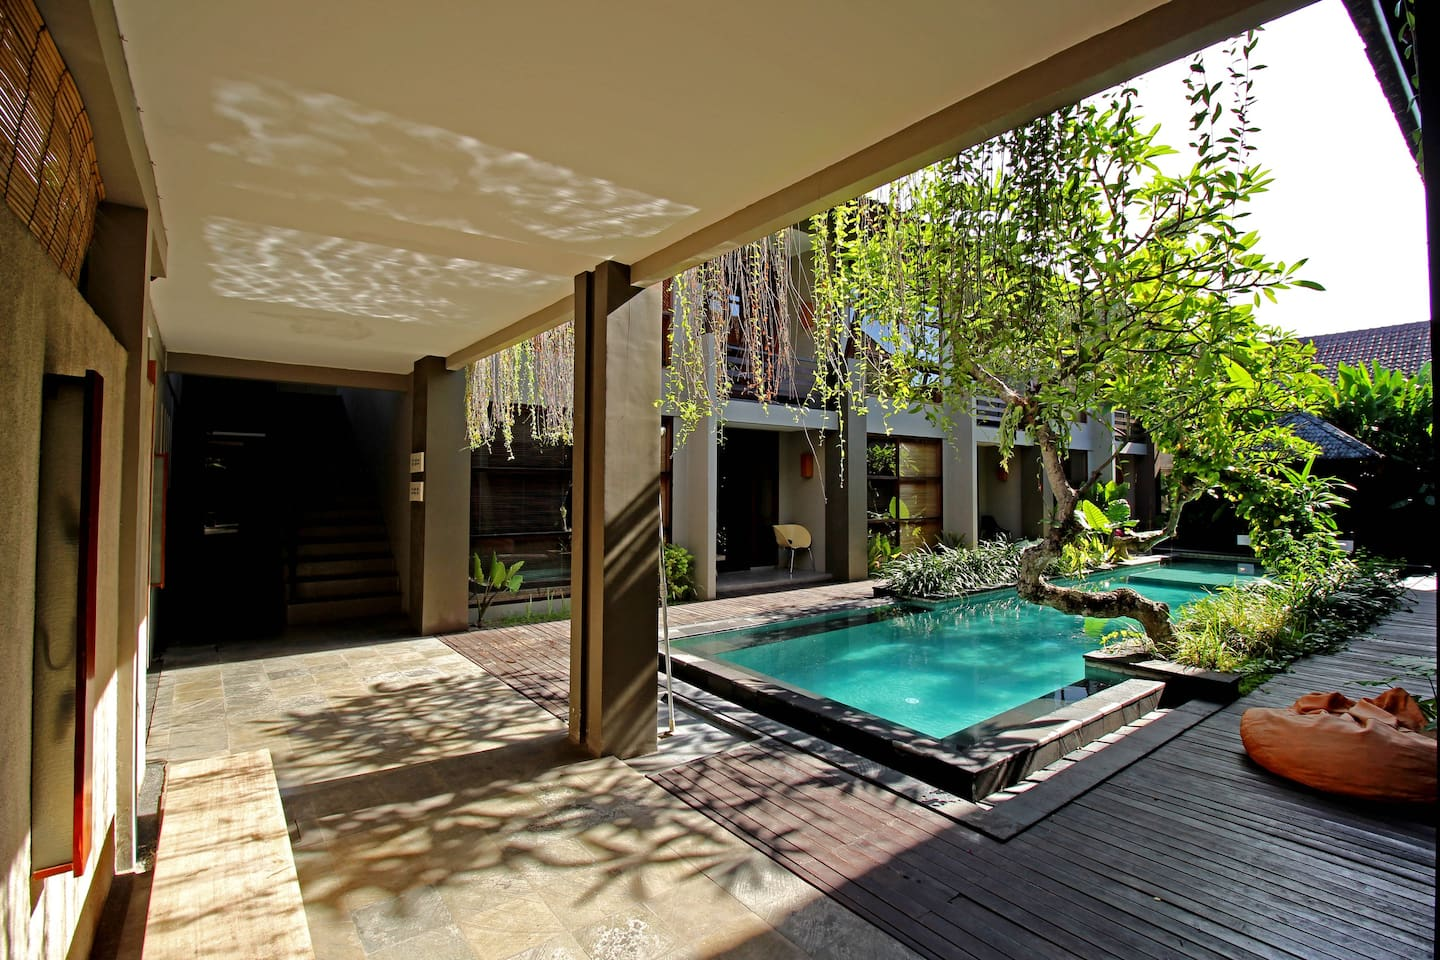 shared swimming pool and sitting area